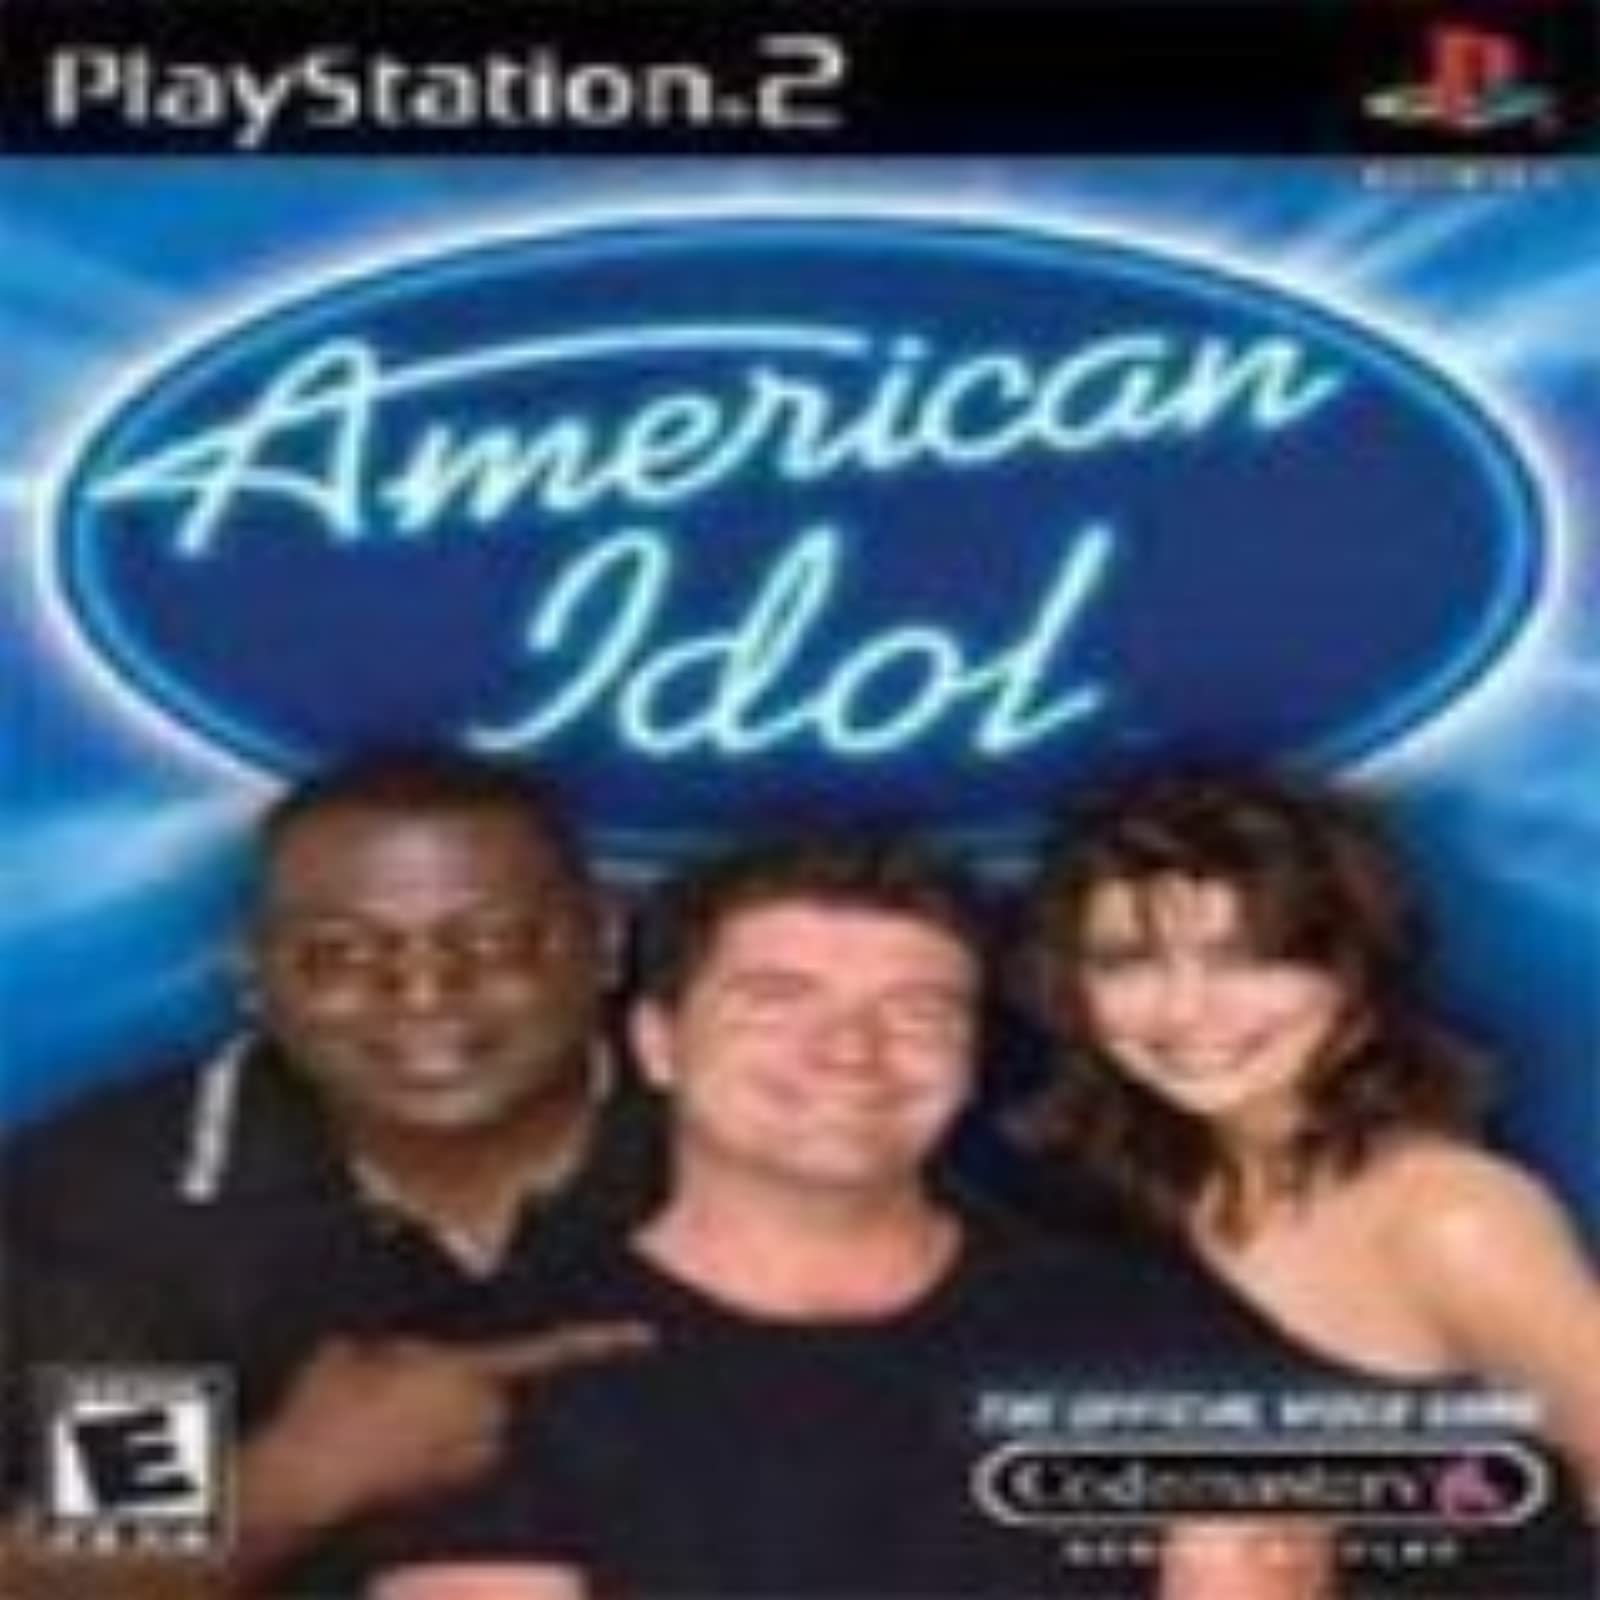 American Idol For PlayStation 2 PS2 RPG